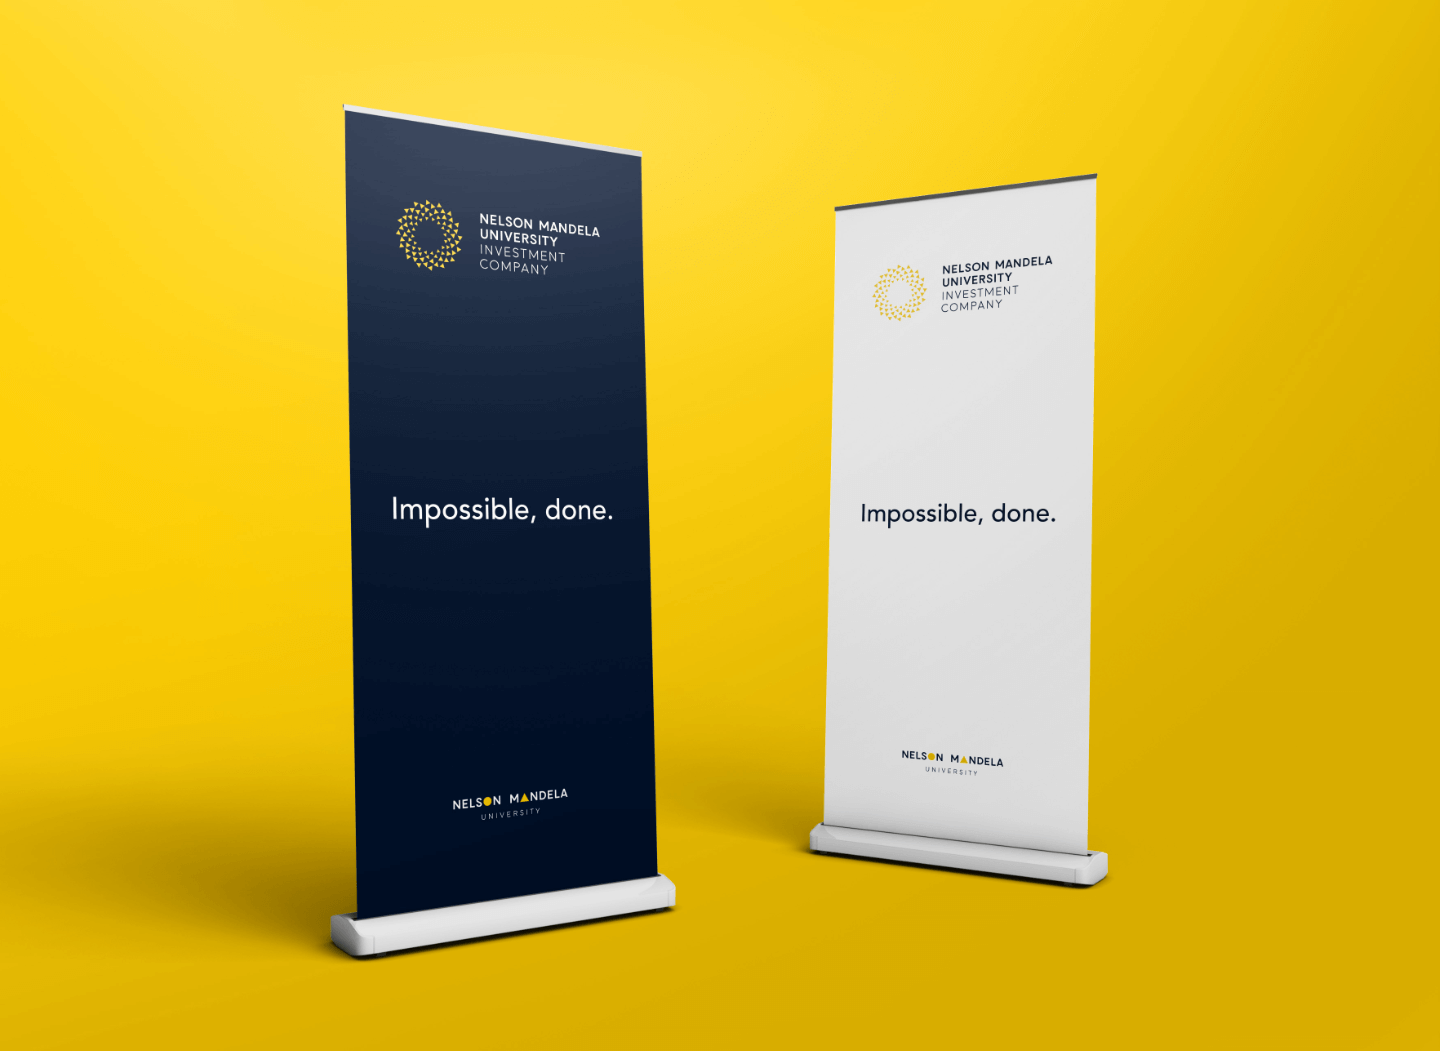 Creative Caterpillar client Nelson Mandela University Investment Company pull-up banners.